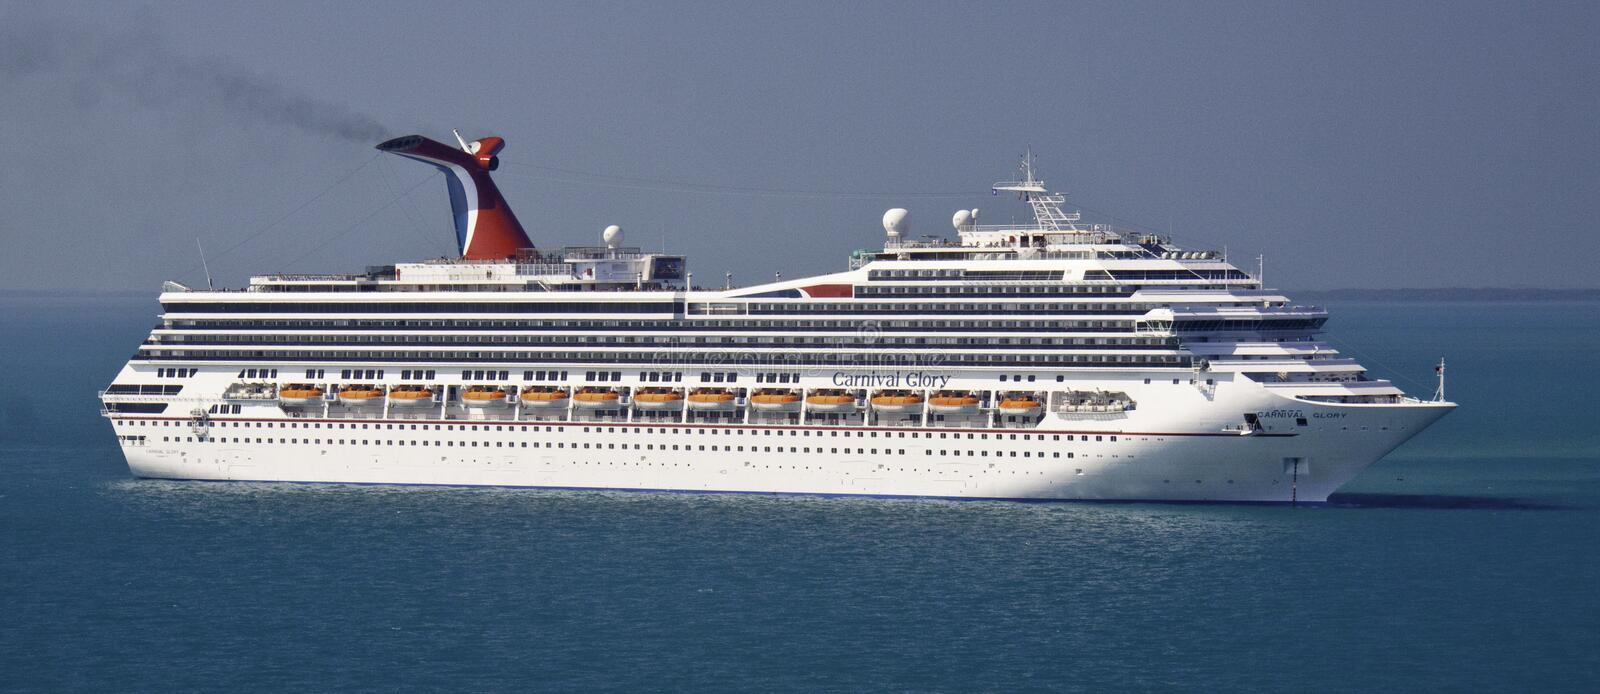 Carnival Glory Cruise Ship In Belize Editorial Photo ...